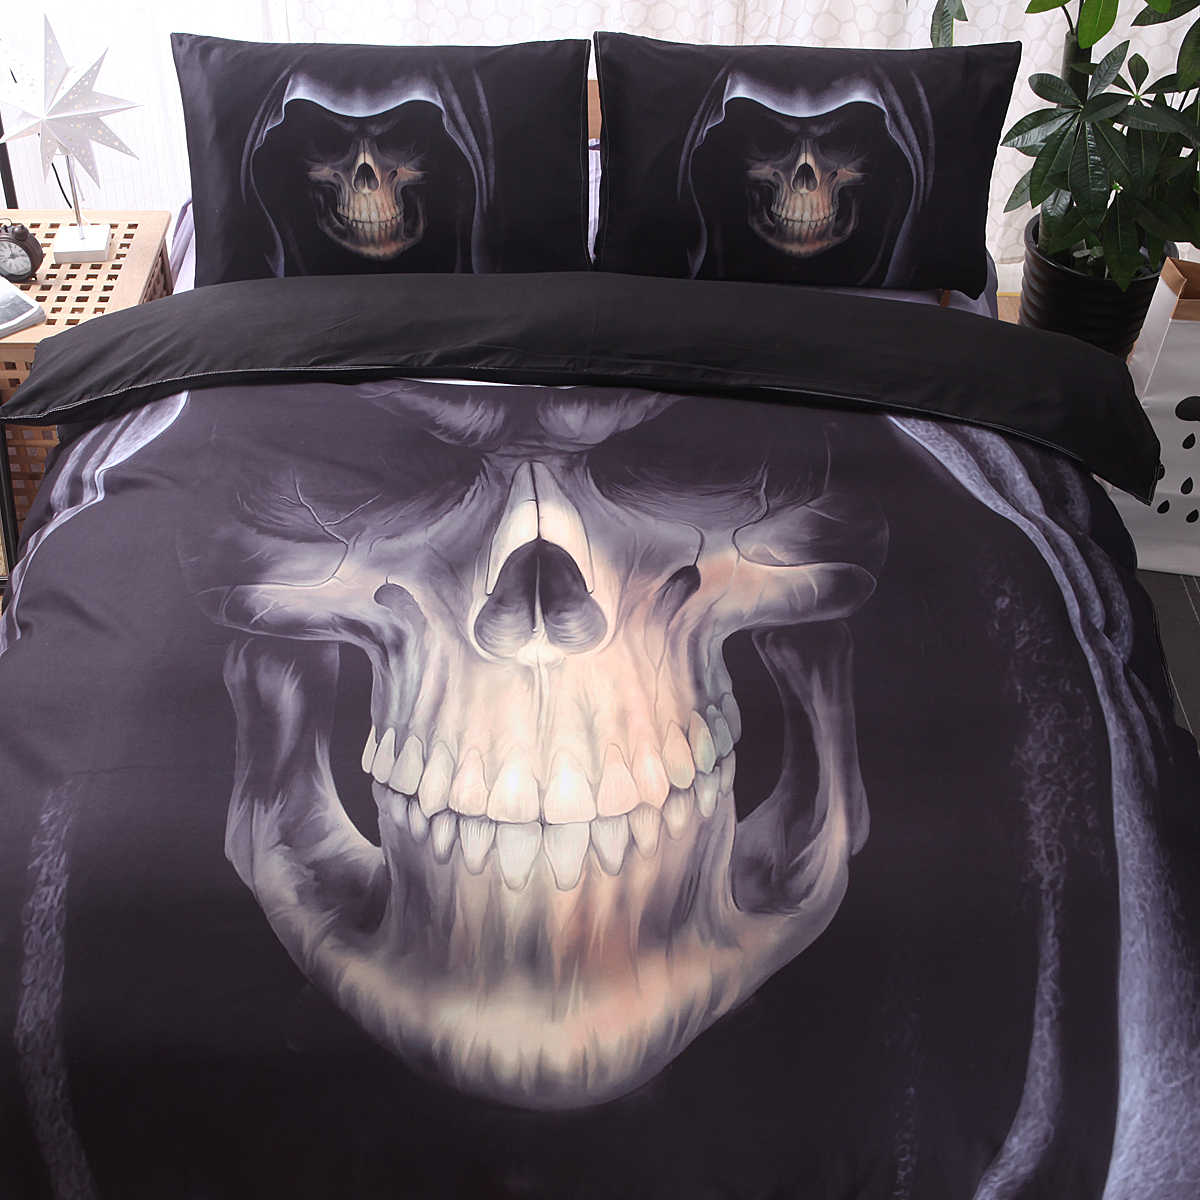 3D Skull Bedding Set Twin Queen King Size 2 / 3 Pcs Rock Skull Duvent Cover Home Bed Linen E